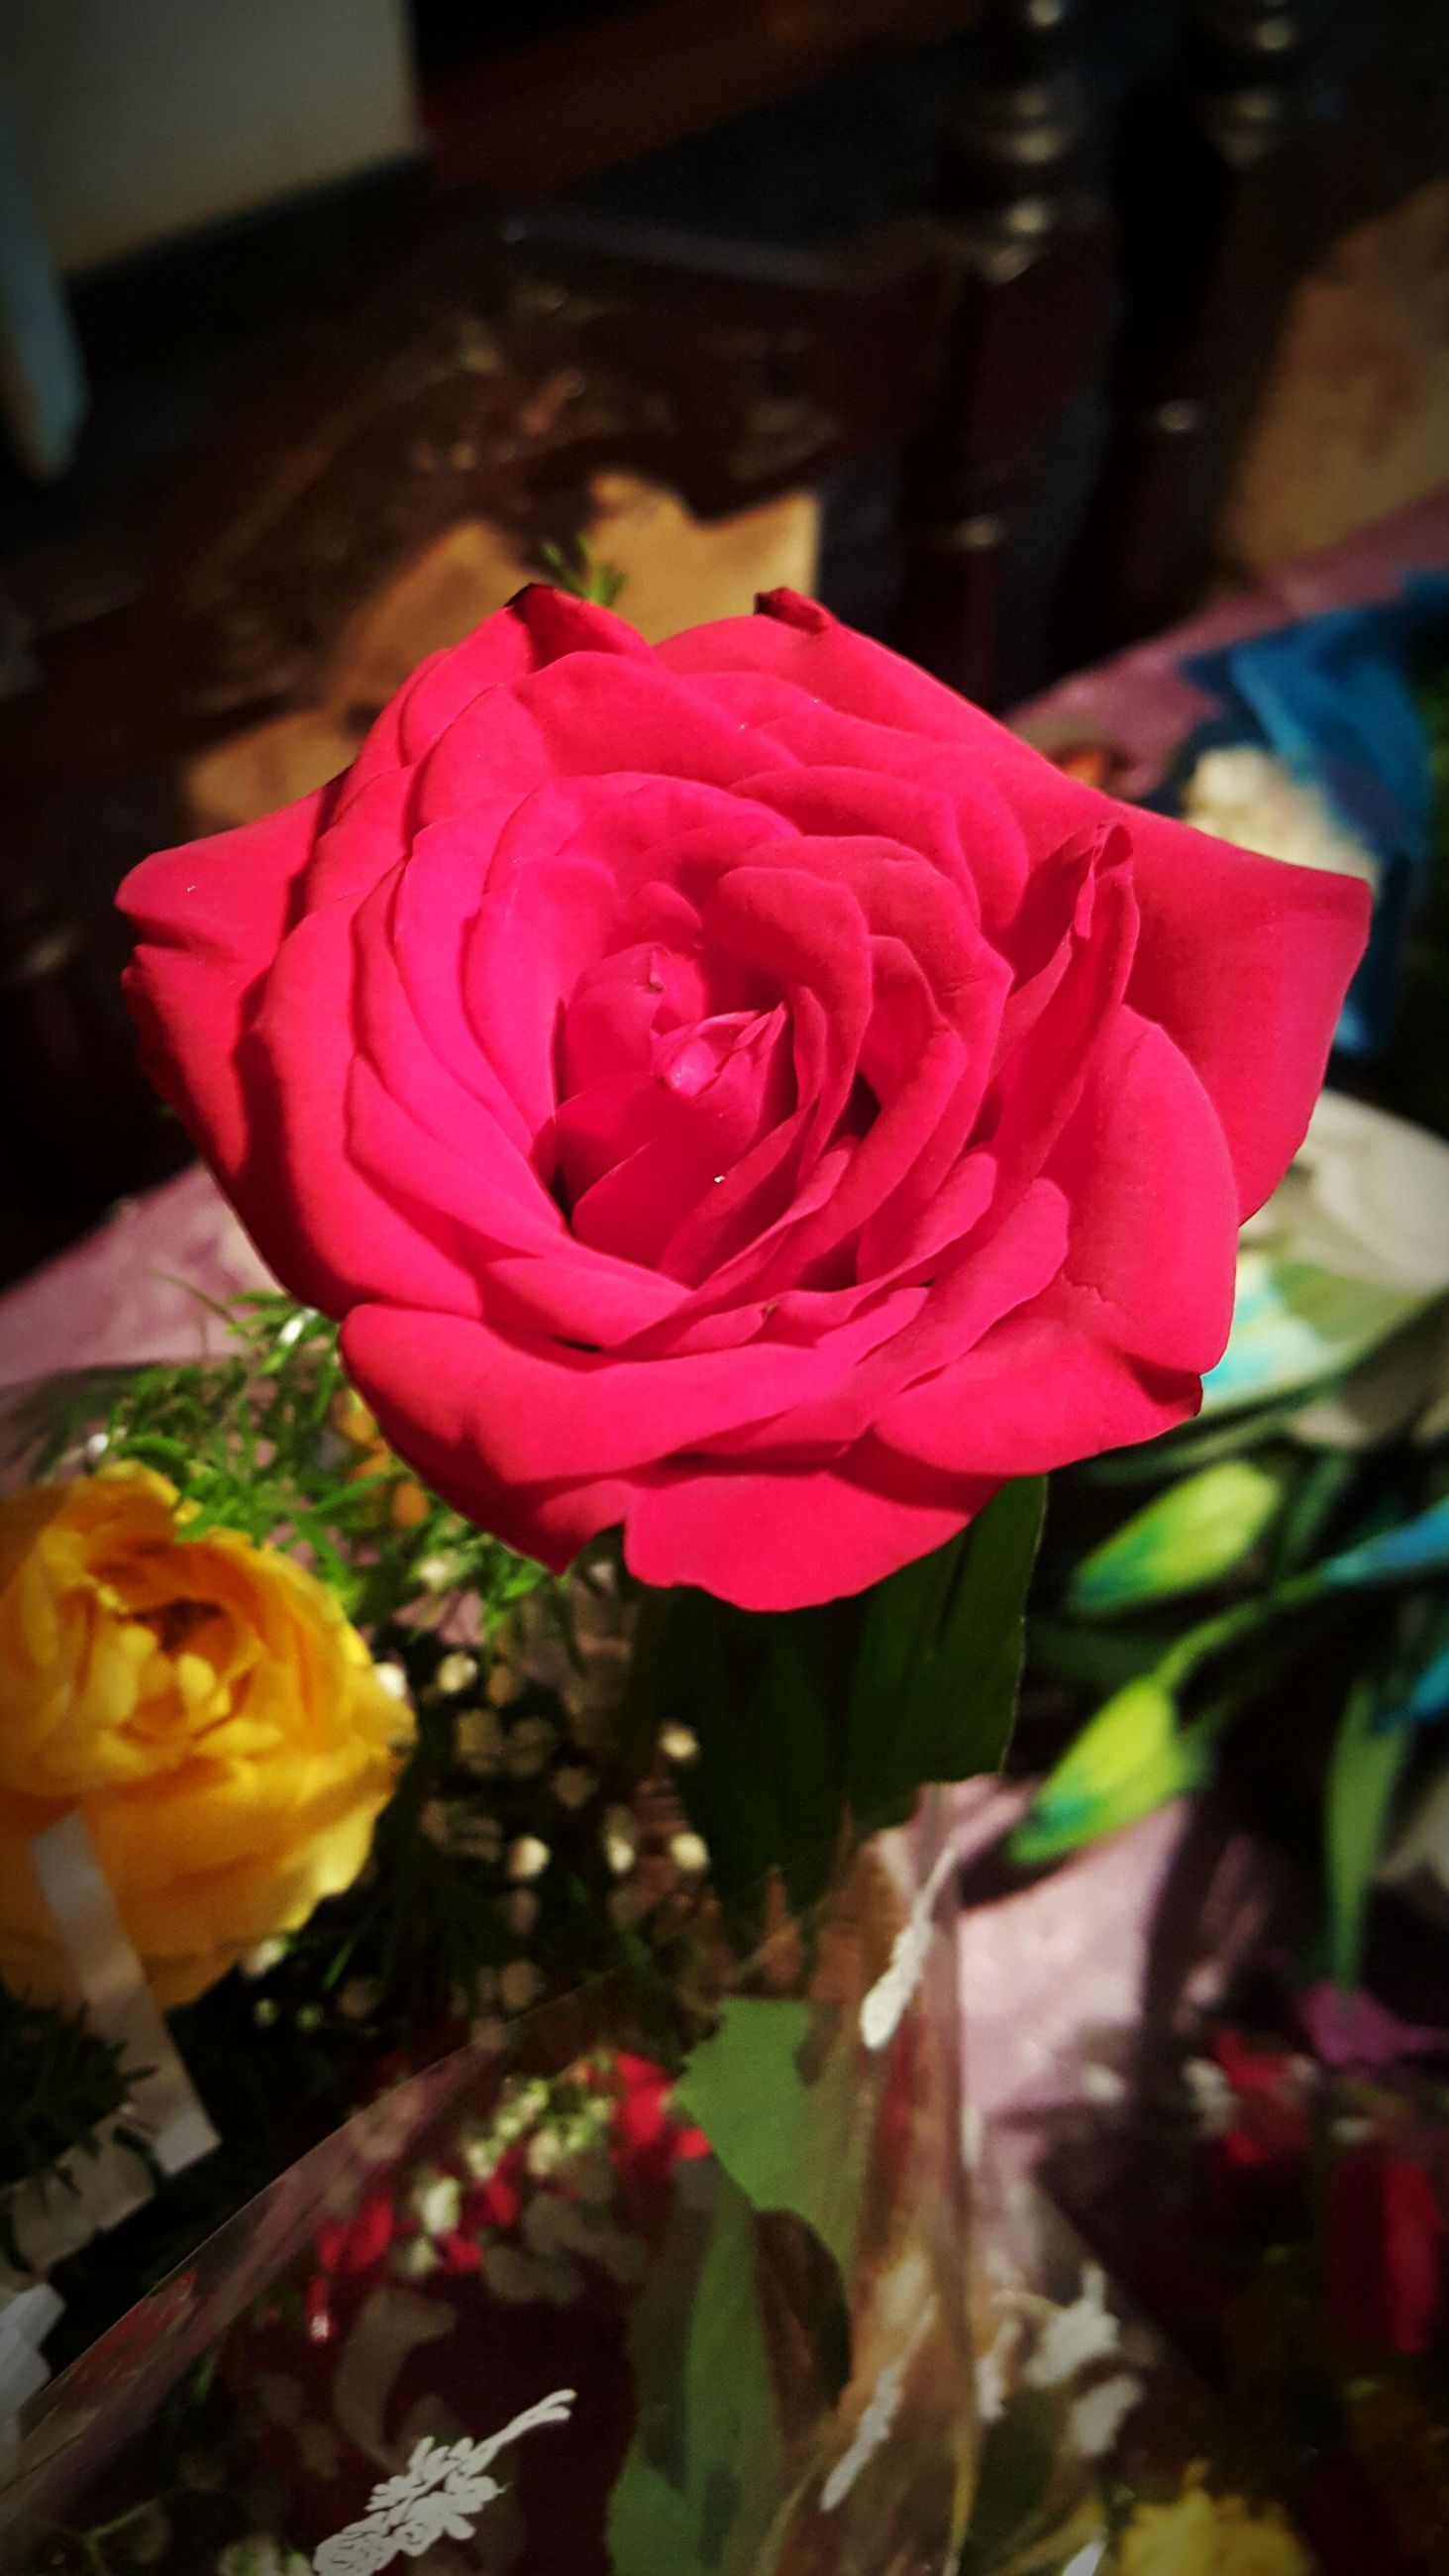 flower, rose - flower, freshness, indoors, petal, close-up, focus on foreground, flower head, fragility, pink color, table, beauty in nature, rose, still life, vase, no people, nature, selective focus, decoration, day